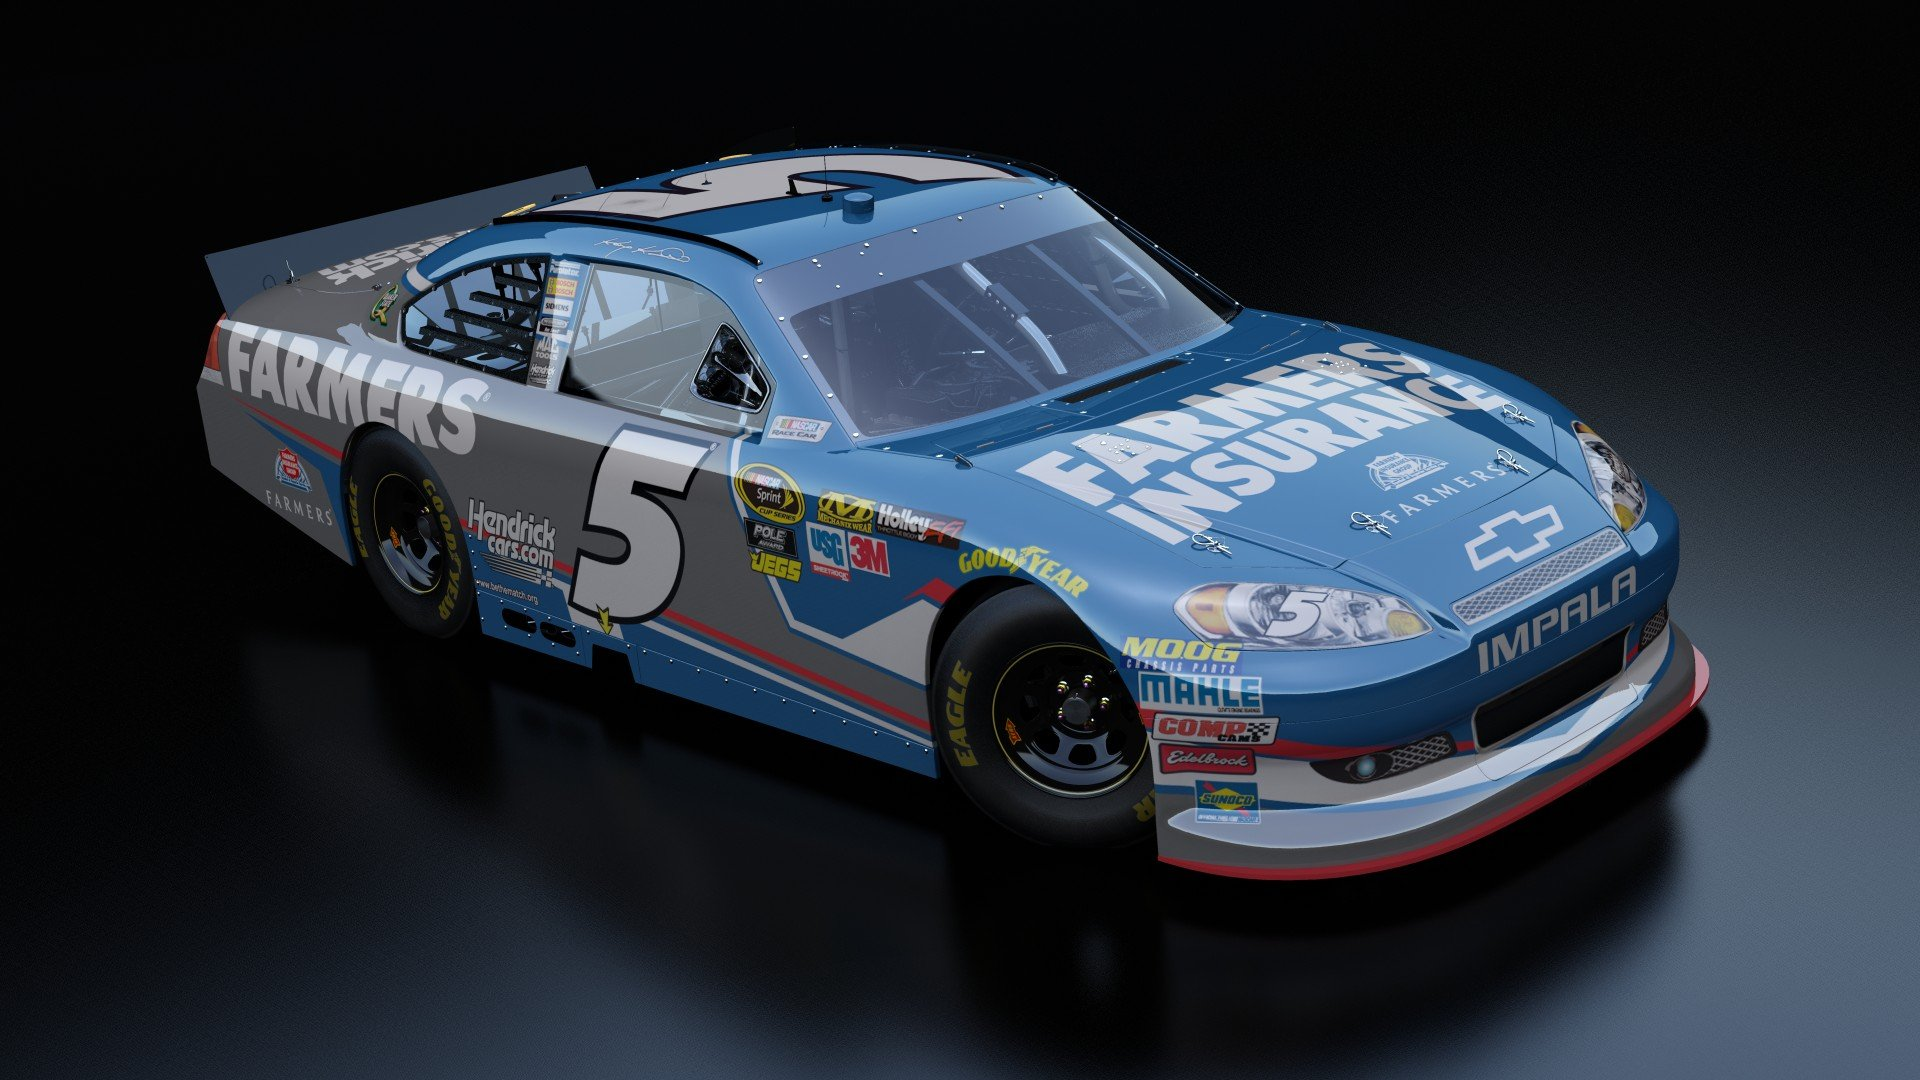 5_KASEY_KAHNE